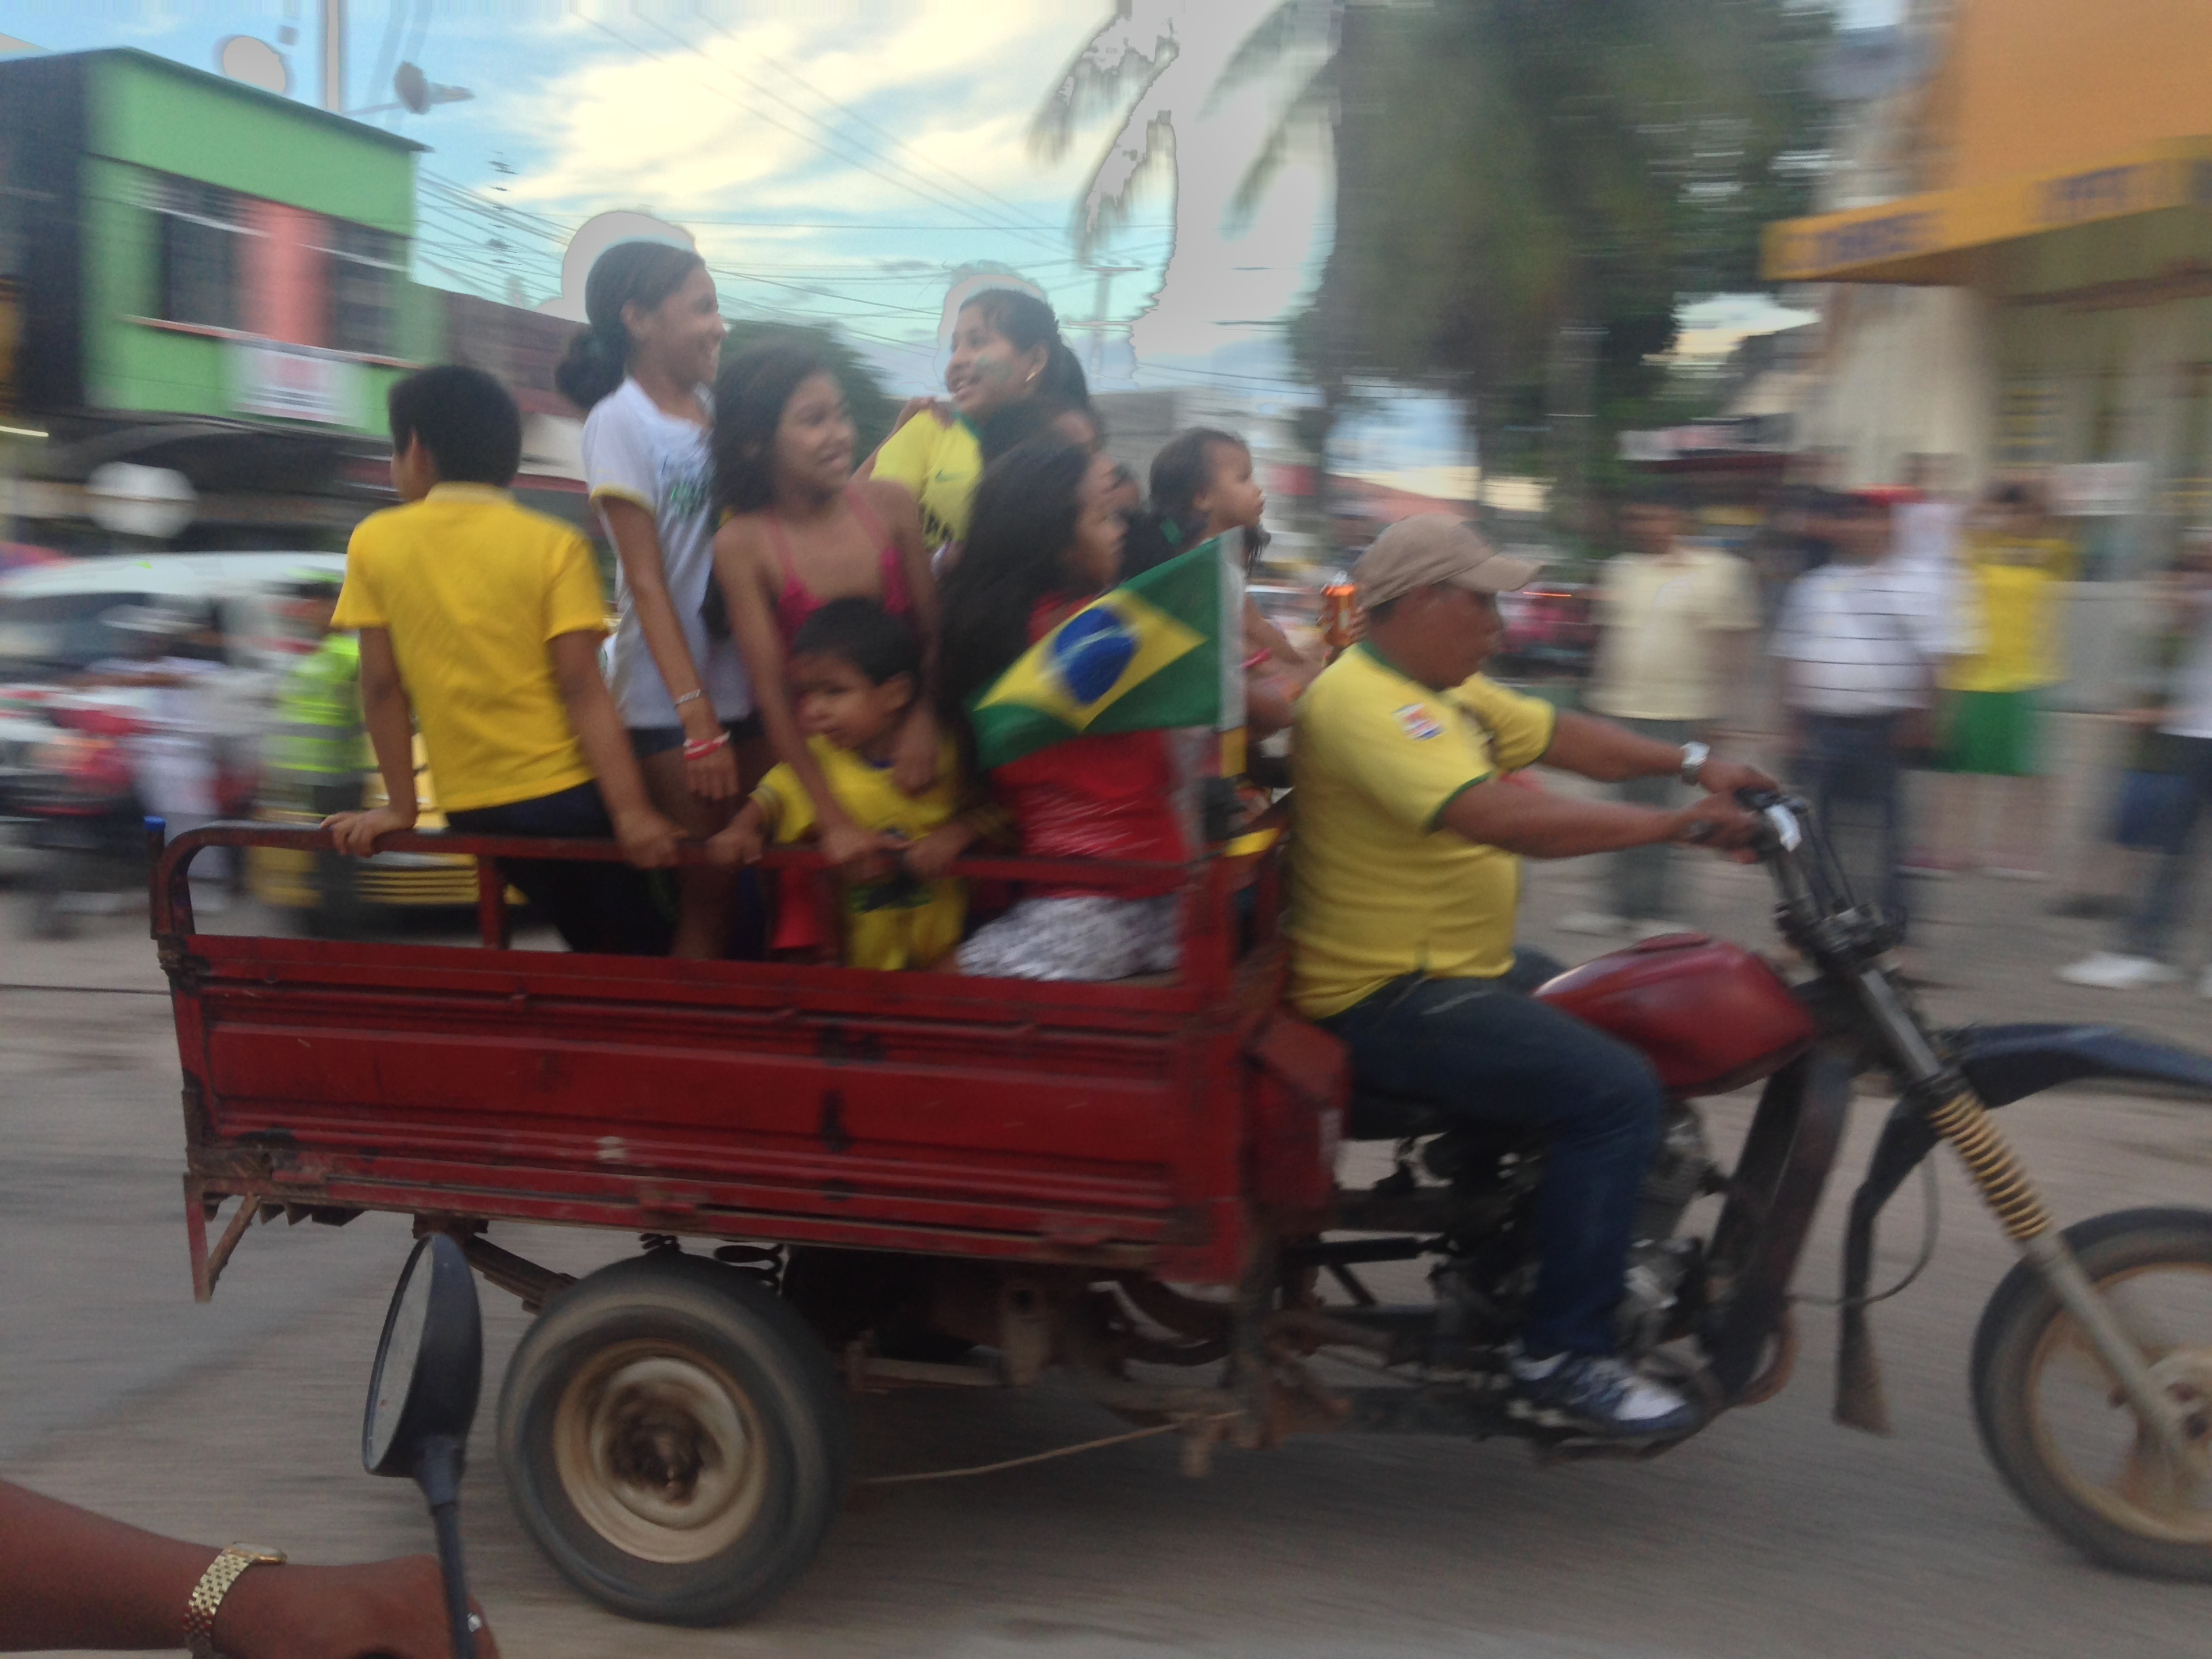 the impromptu parade after Brazil won their first game